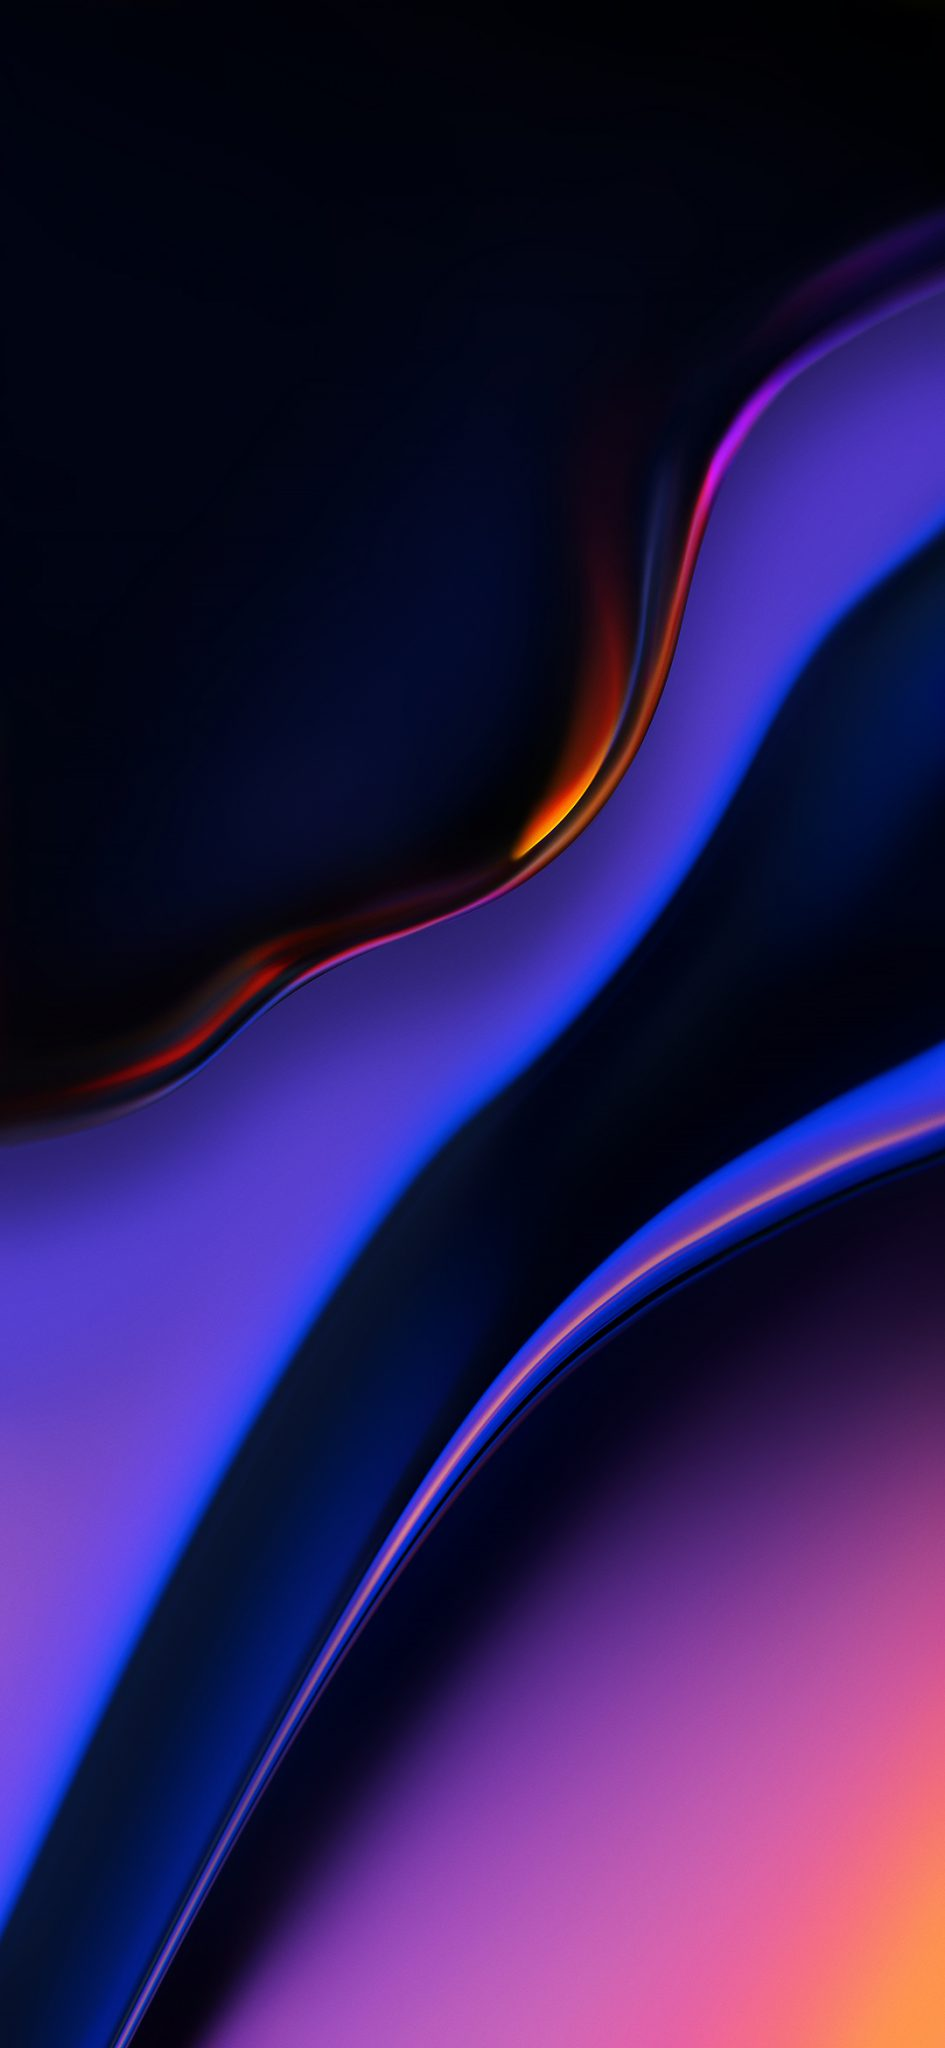 Free Download Oneplus 6t Stock Wallpapers 4k